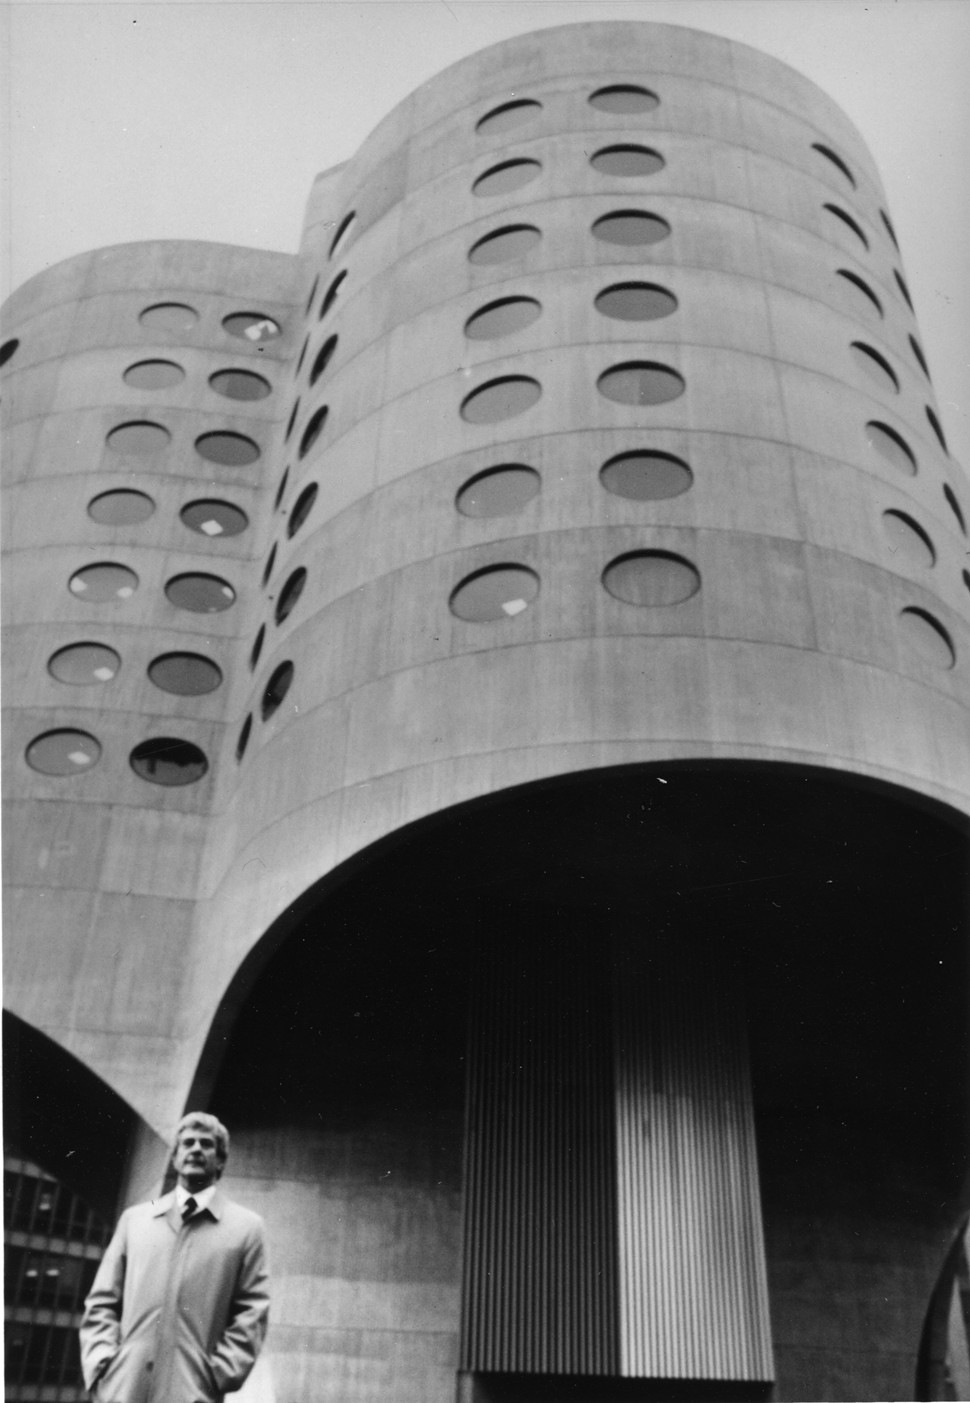 Bertrand Goldberg/Prentice Hospital